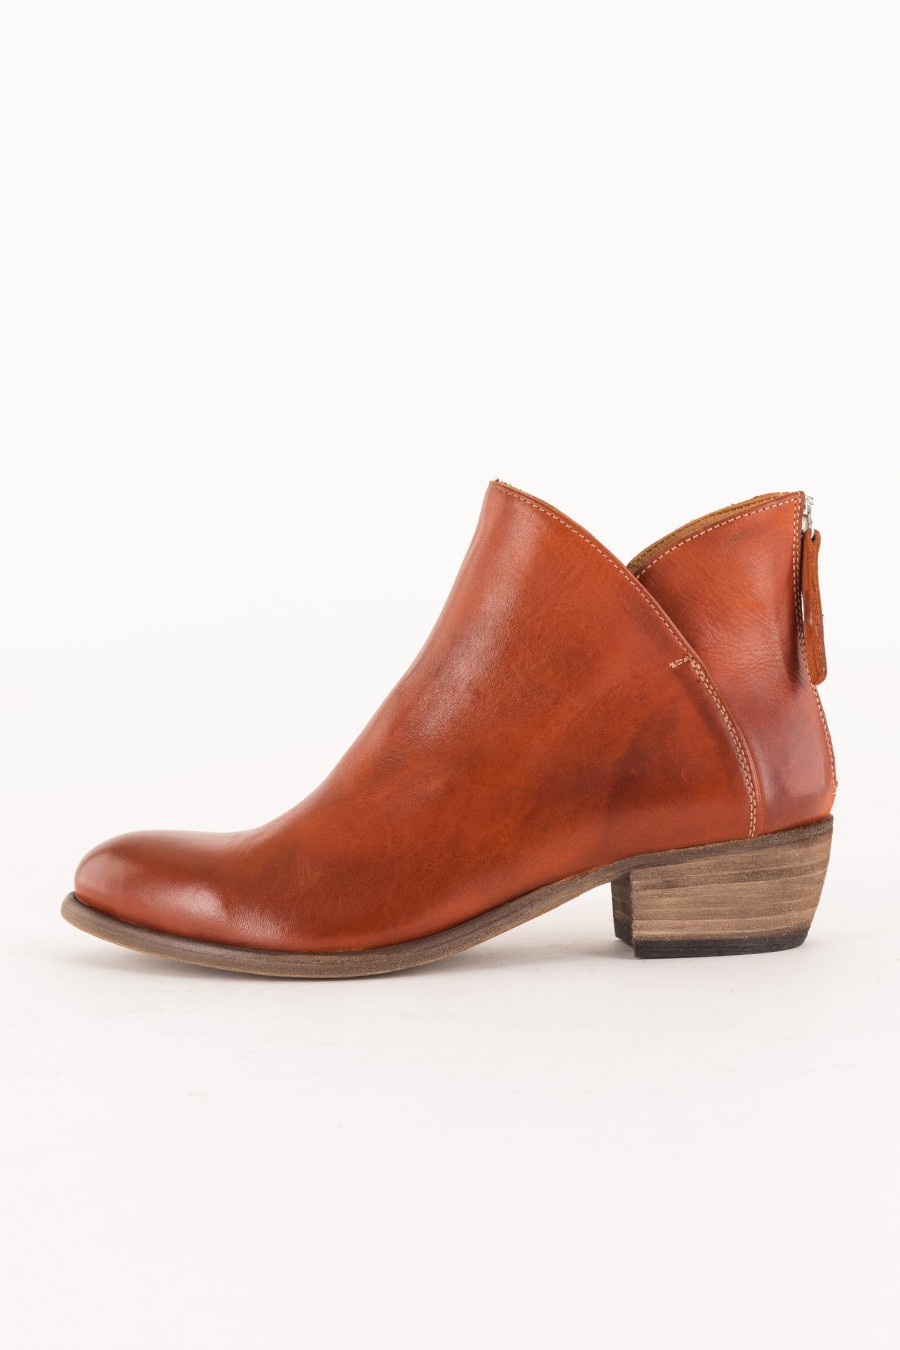 ankle boots brick color with low heel